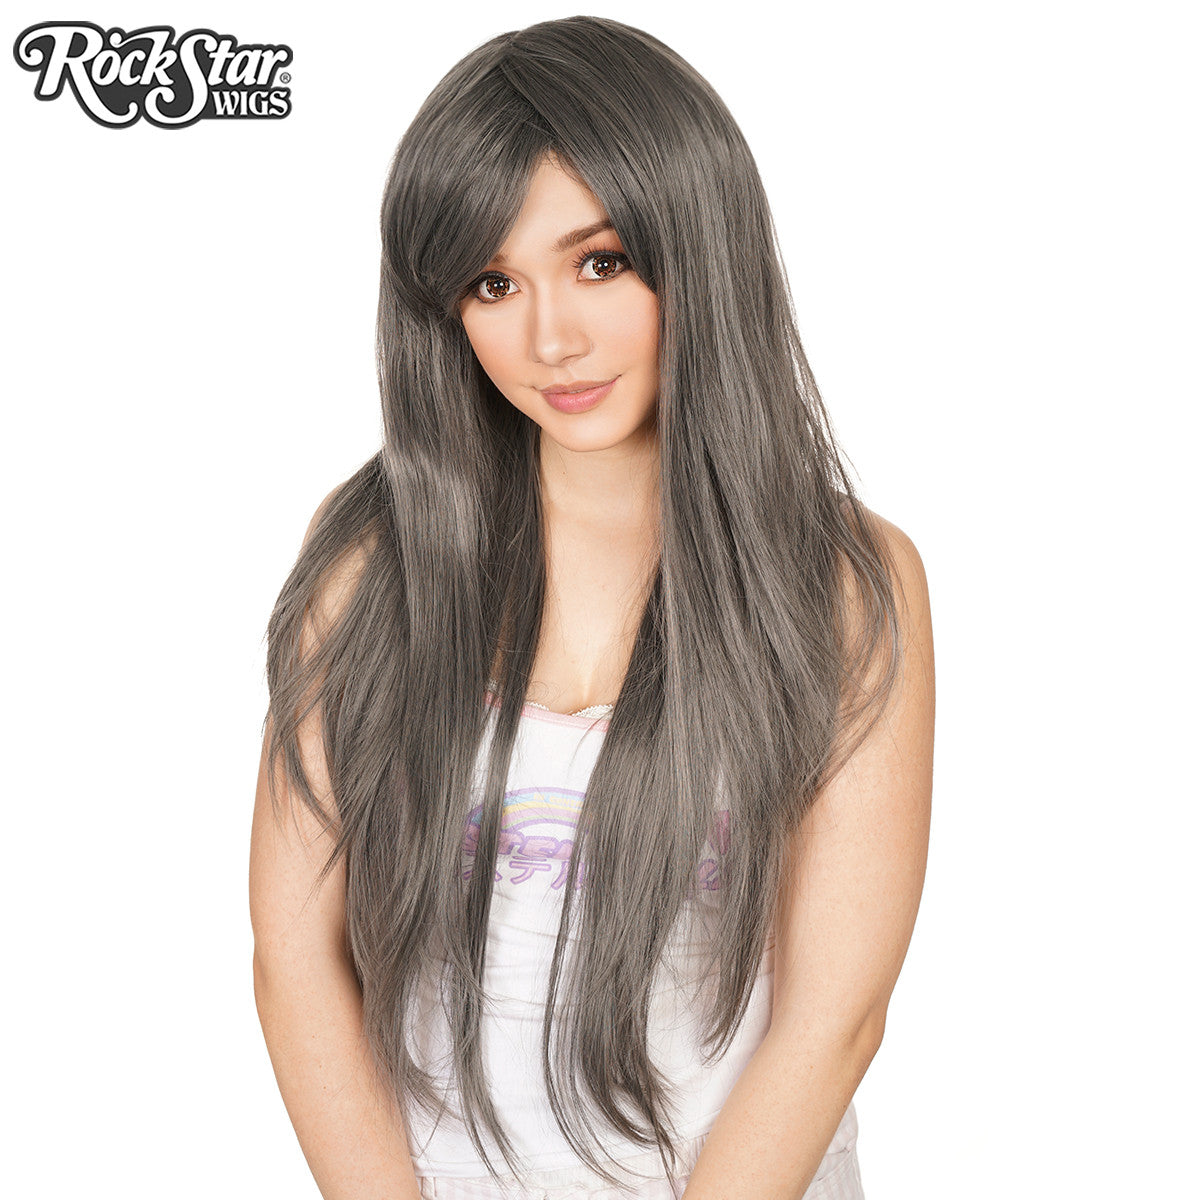 RockStar Wigs® <br> Ombre Alexa™ Collection -  Dark Grey Mix -00546